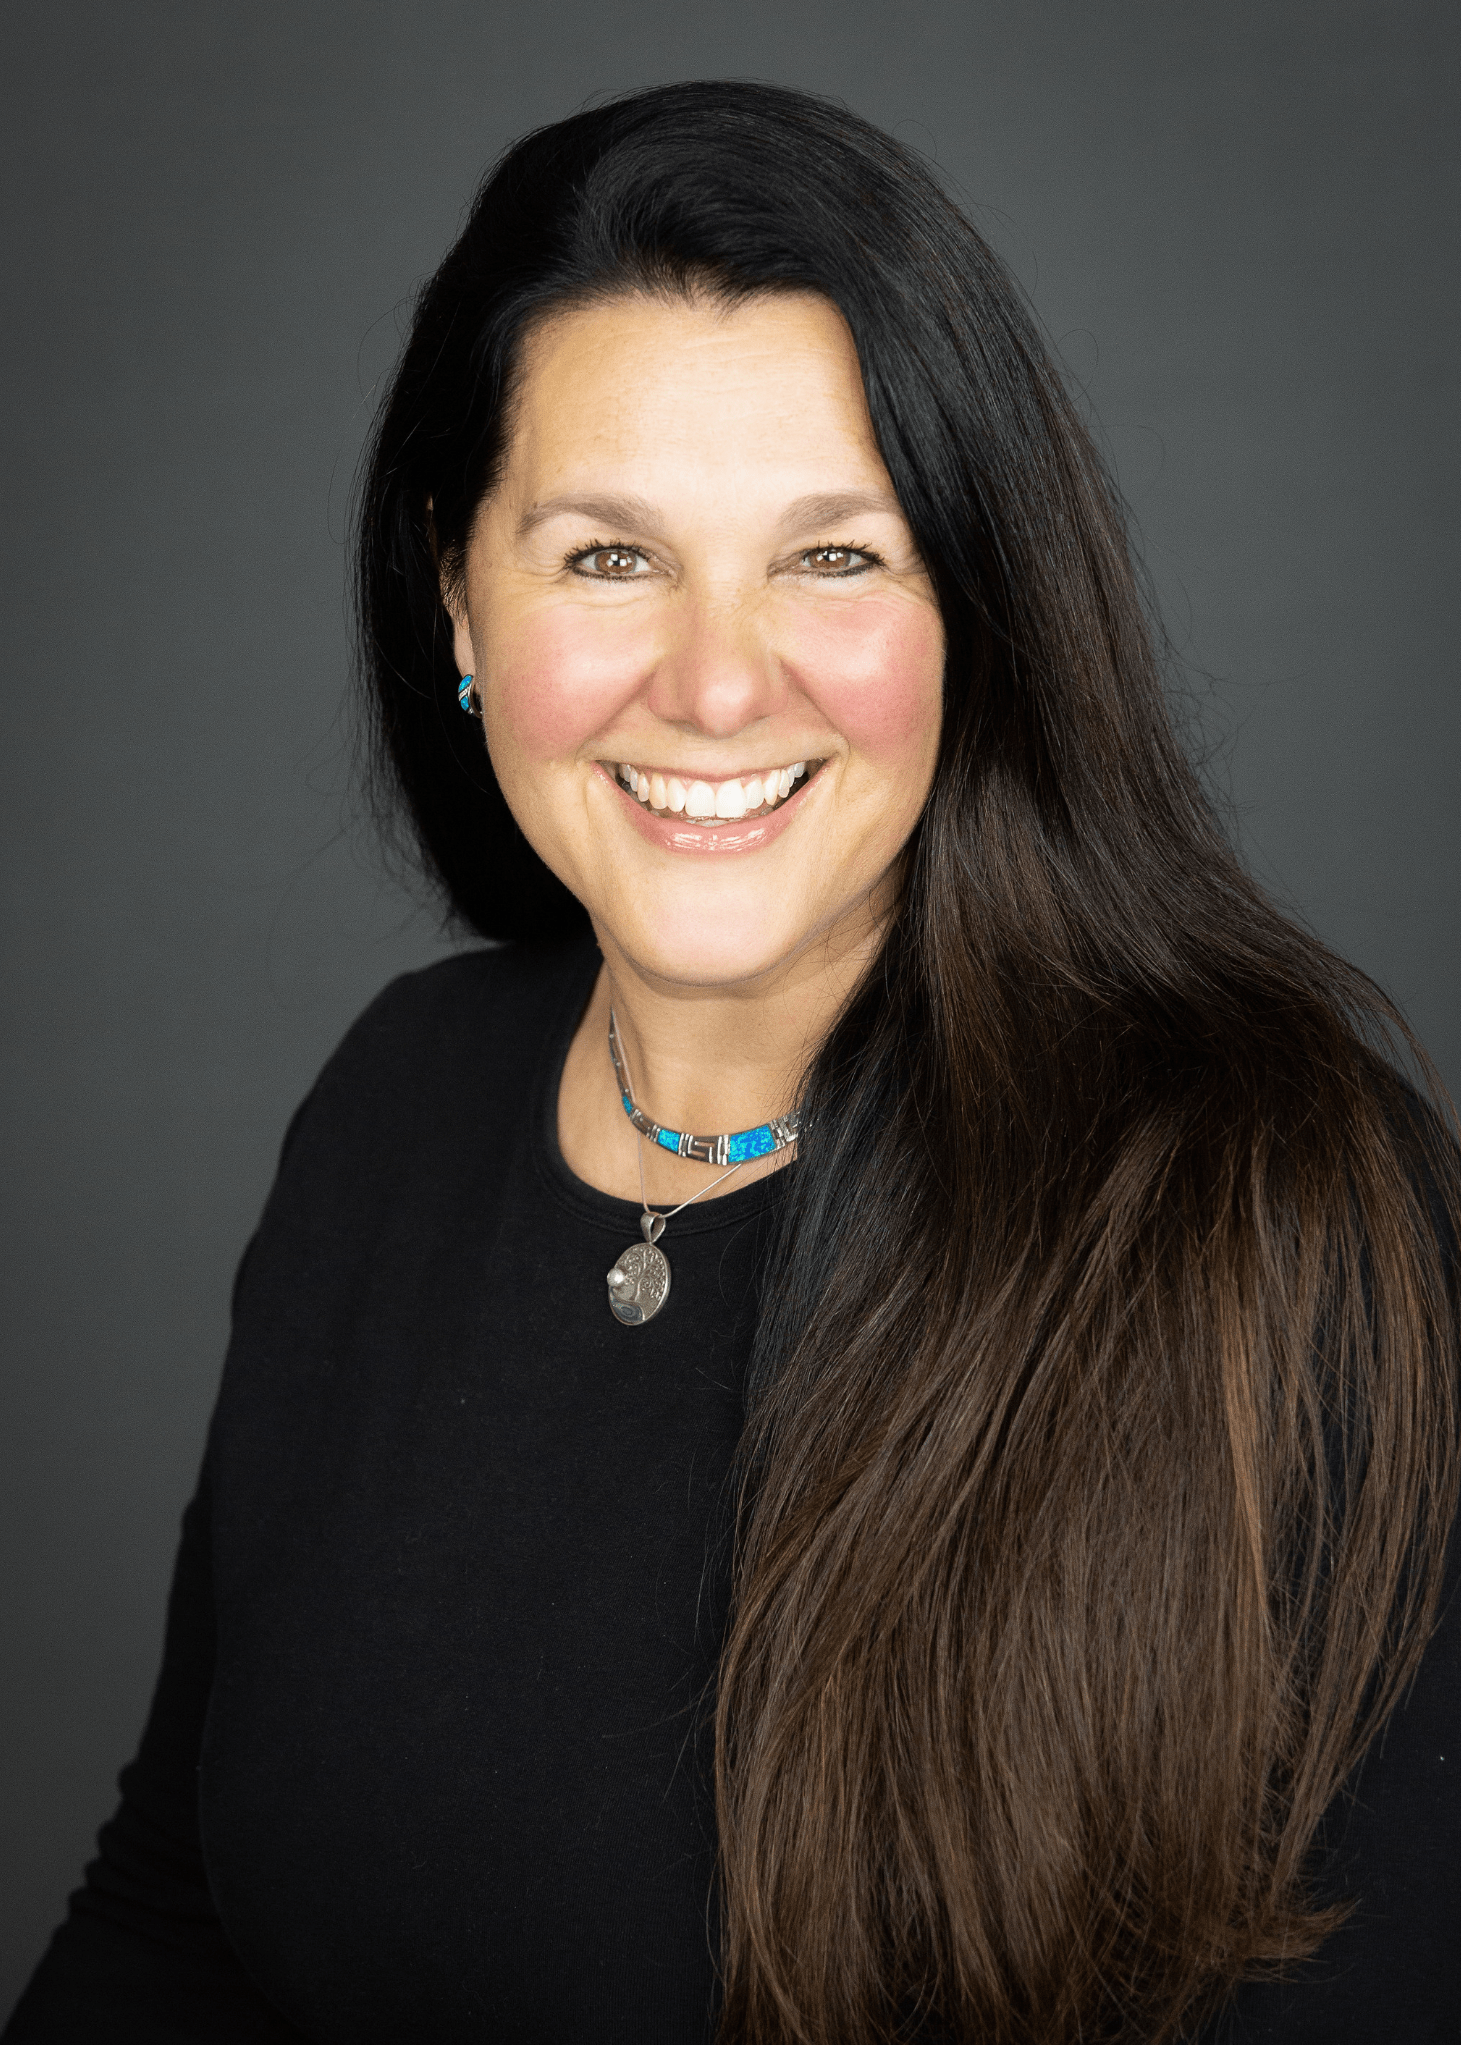 Renee Cash Chong, Windermere, Real Estate, Whidbey Island, Whidbey, Homes, Buy, sell, invest, listing agent, agent, trusted realtor, selling agent